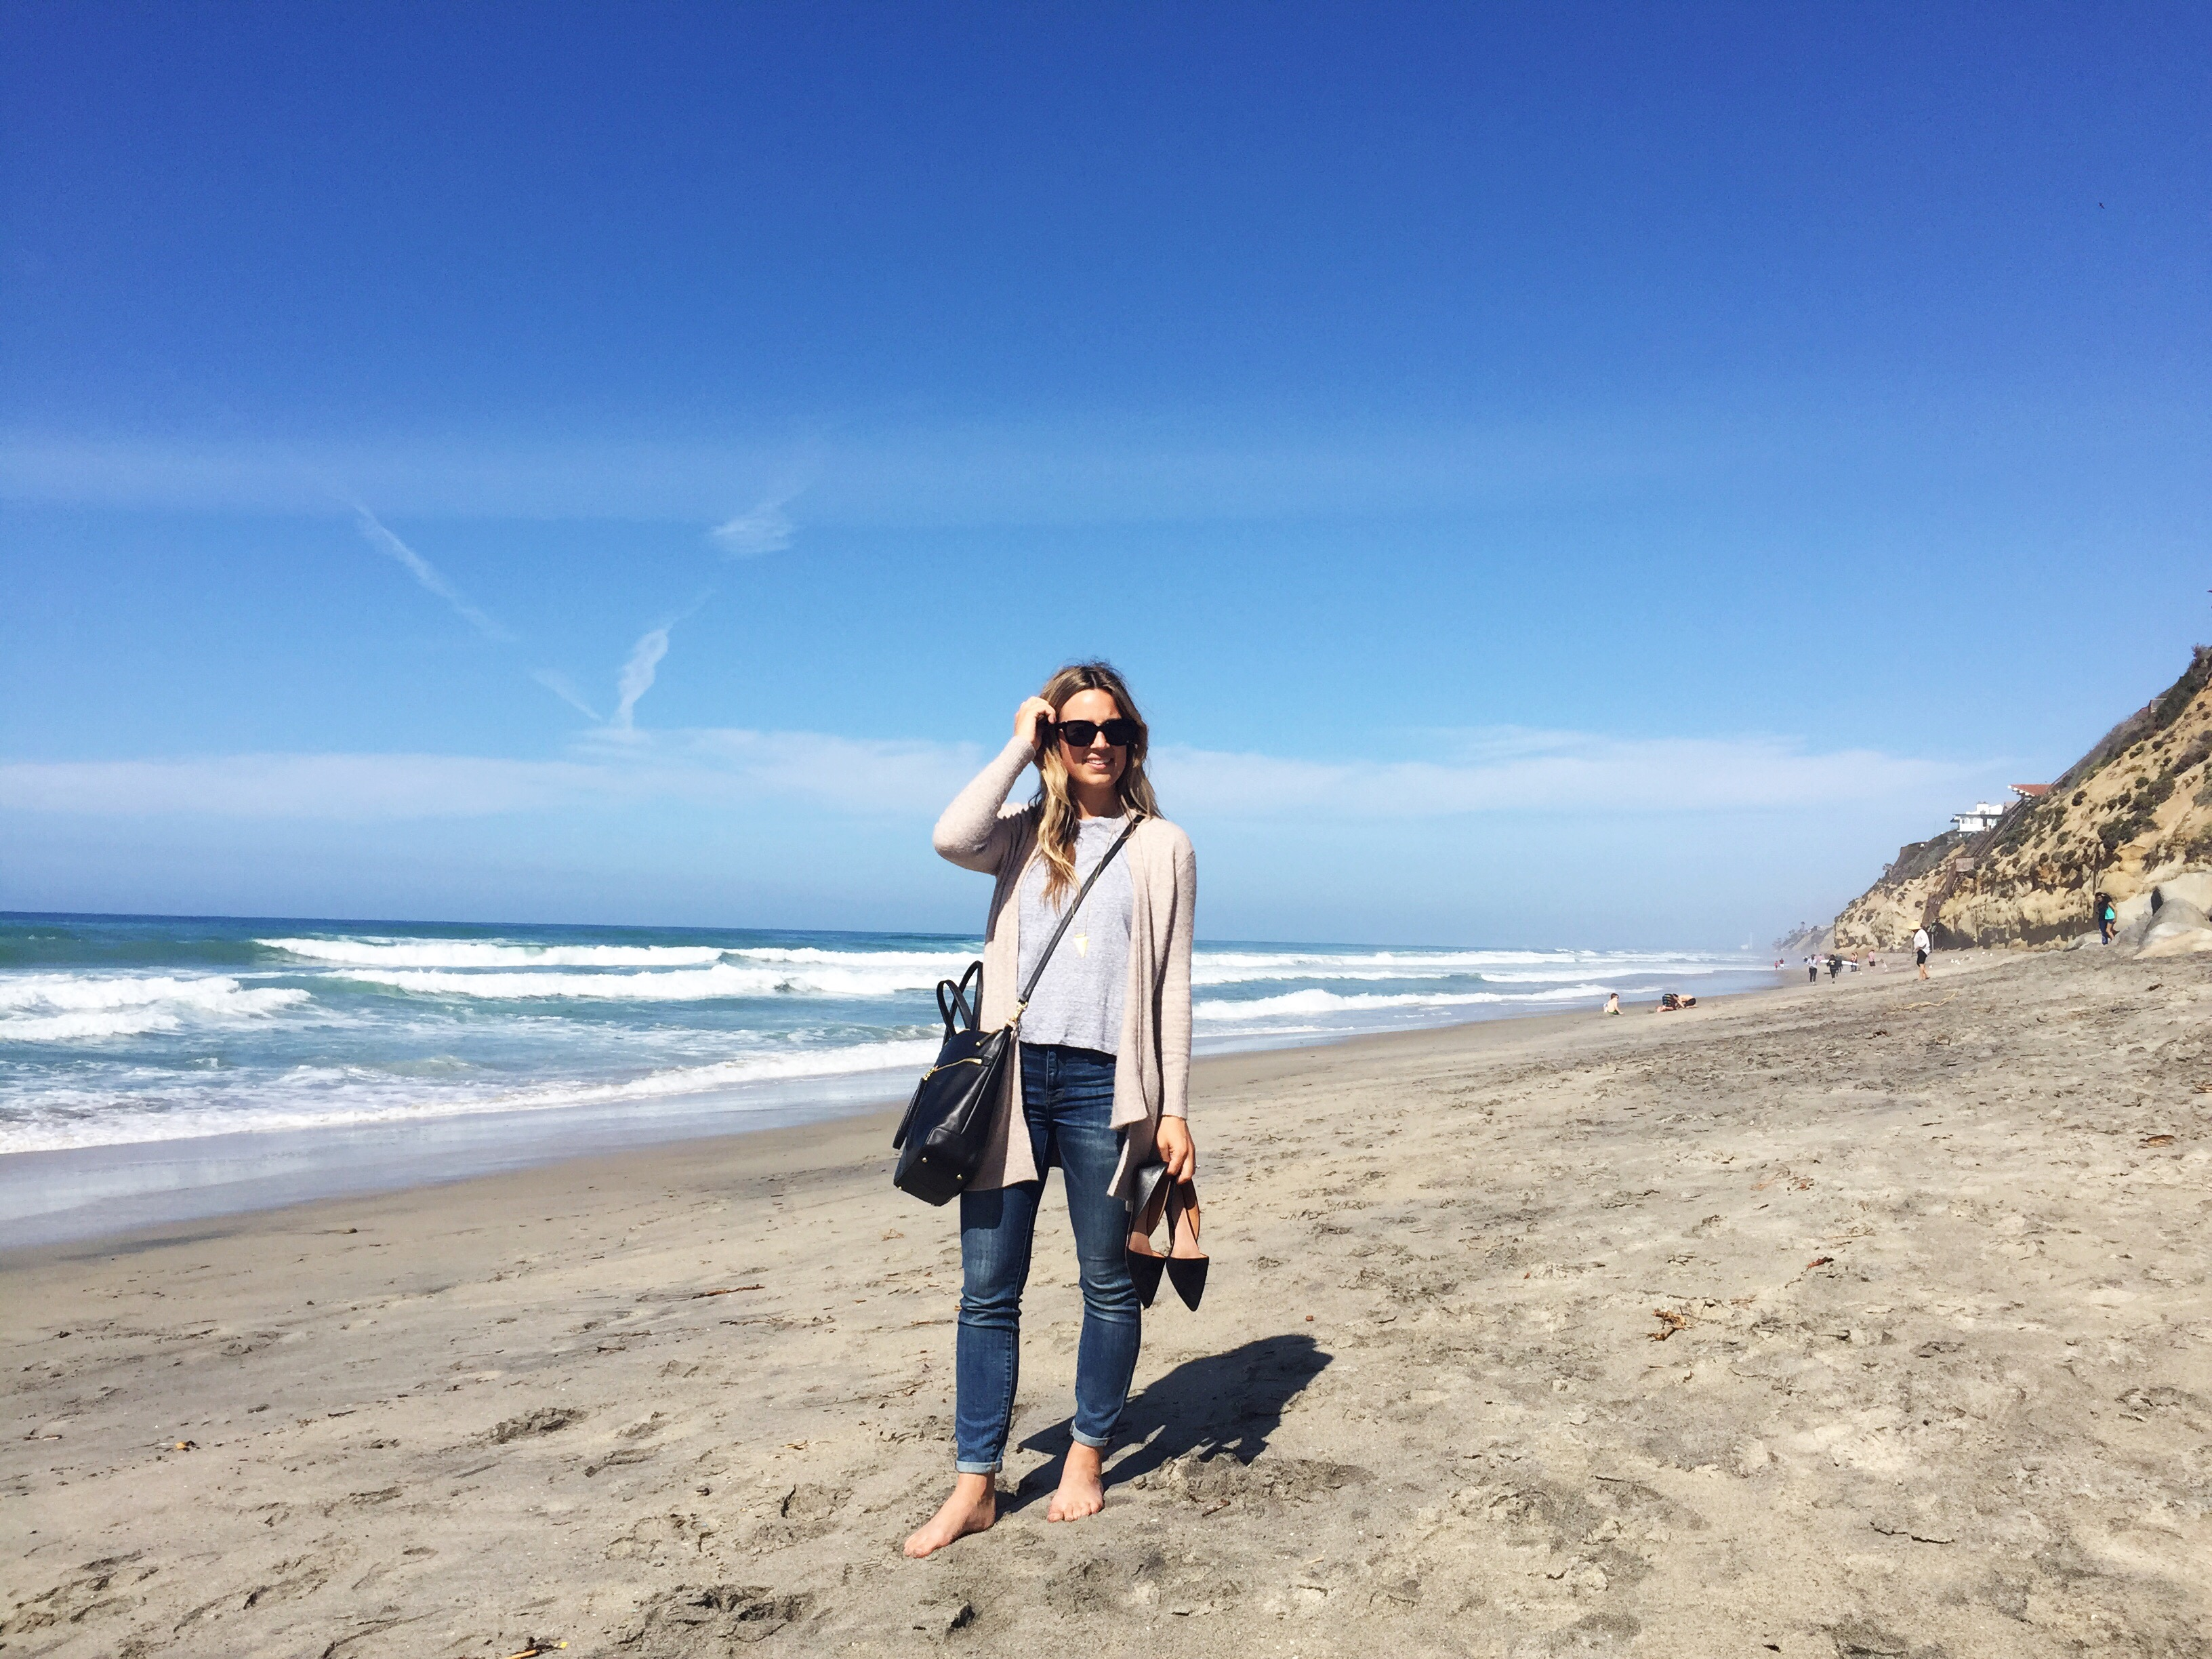 Ryder Cardigan | Thoughts by Natalie